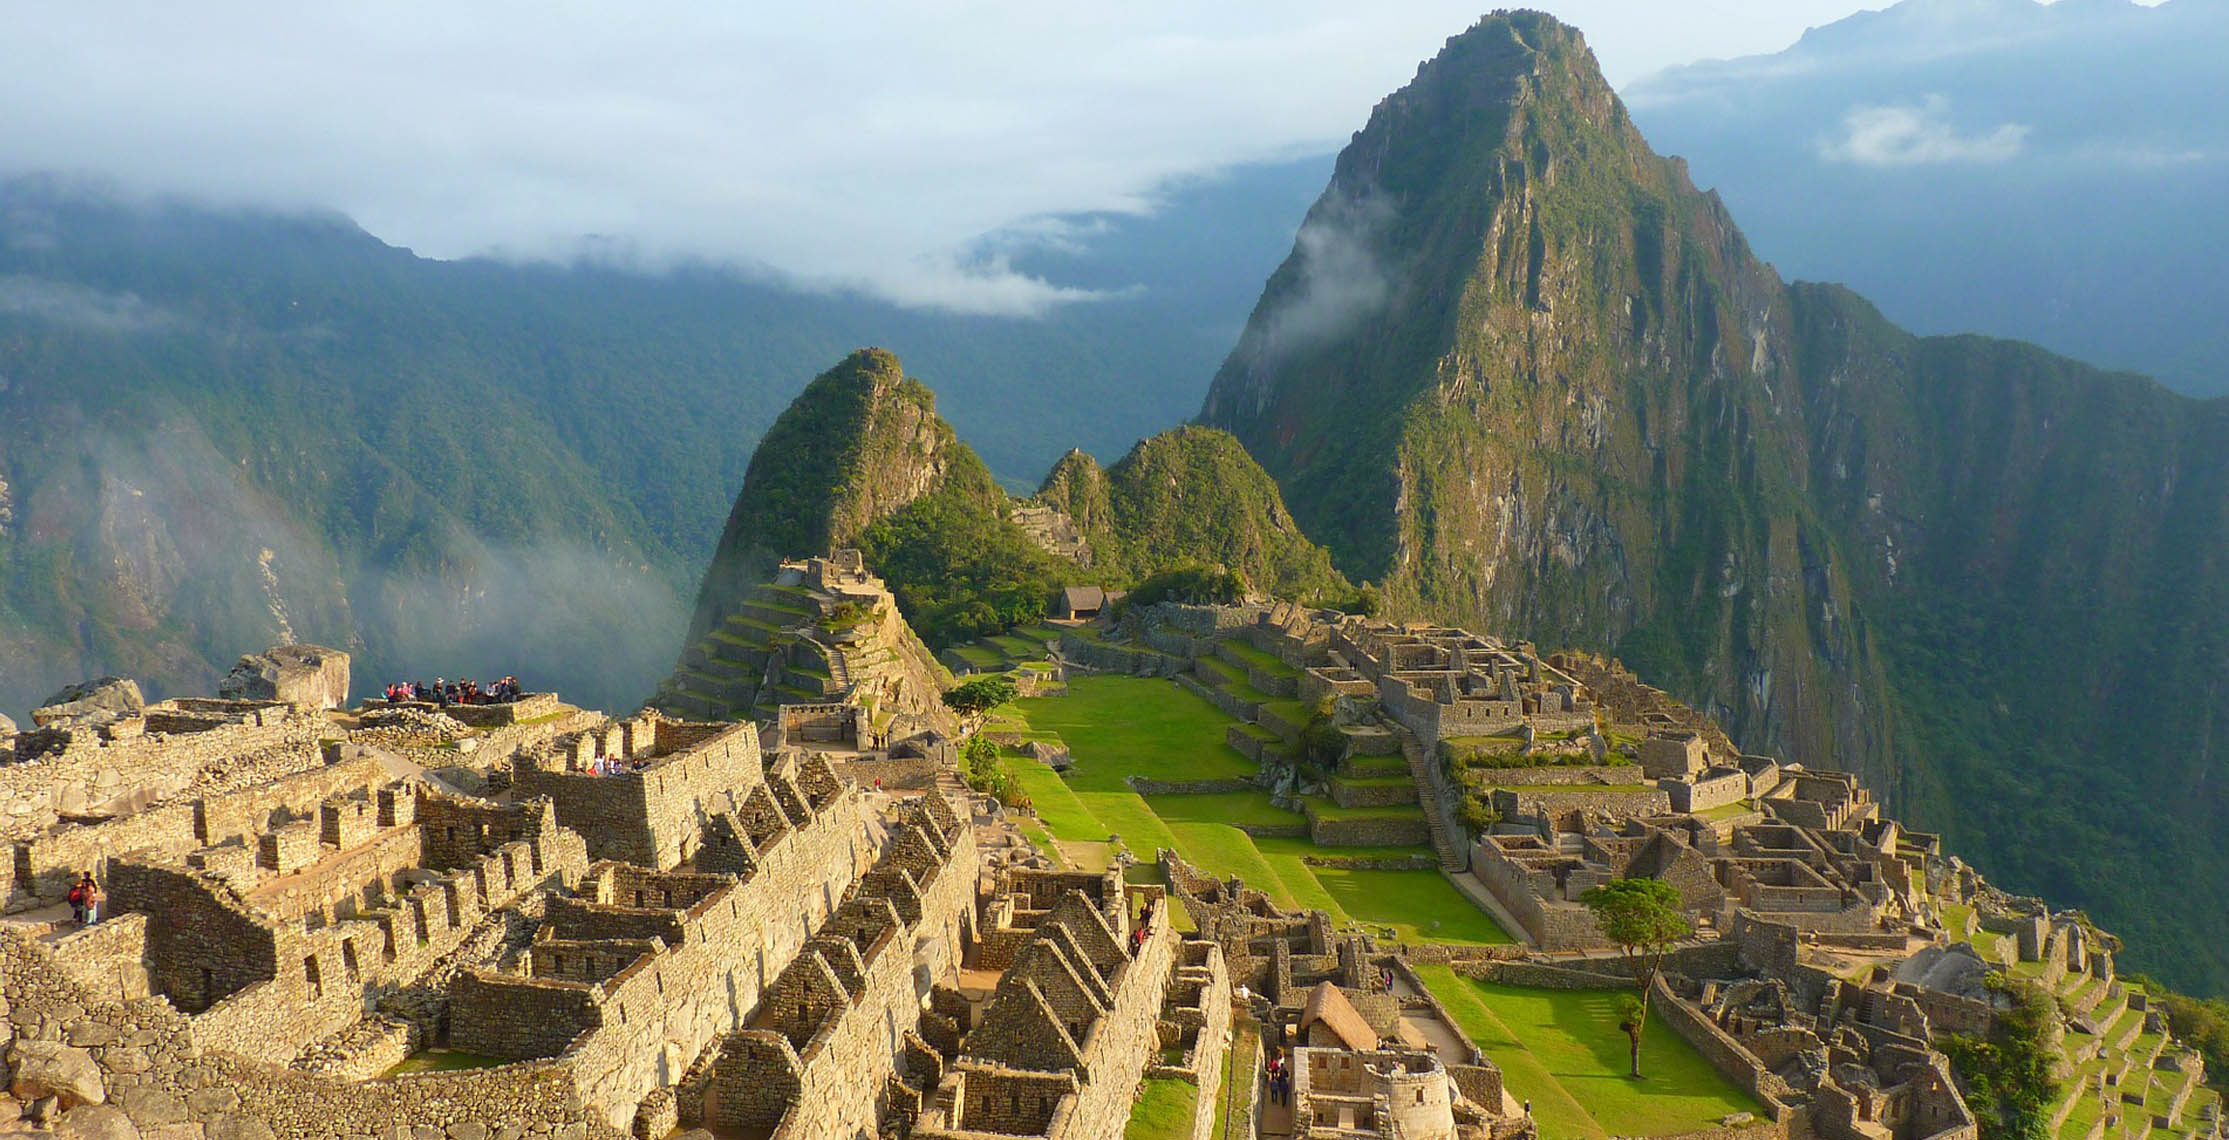 Travel to South America with Globus!